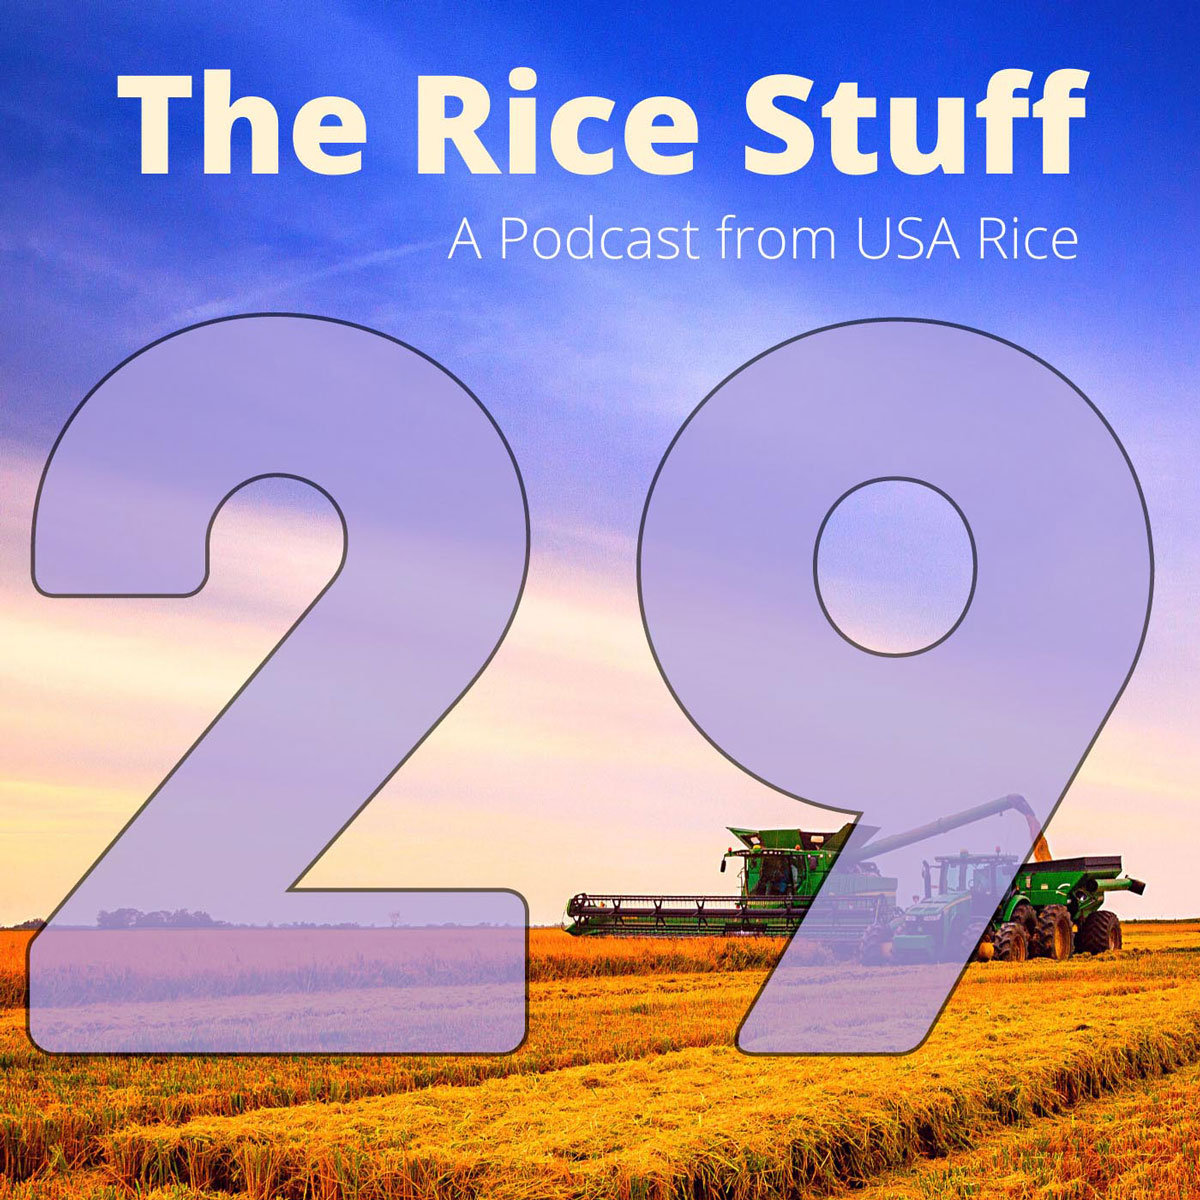 Number 29 superimposed over photo of combine and grain cart in mature rice field